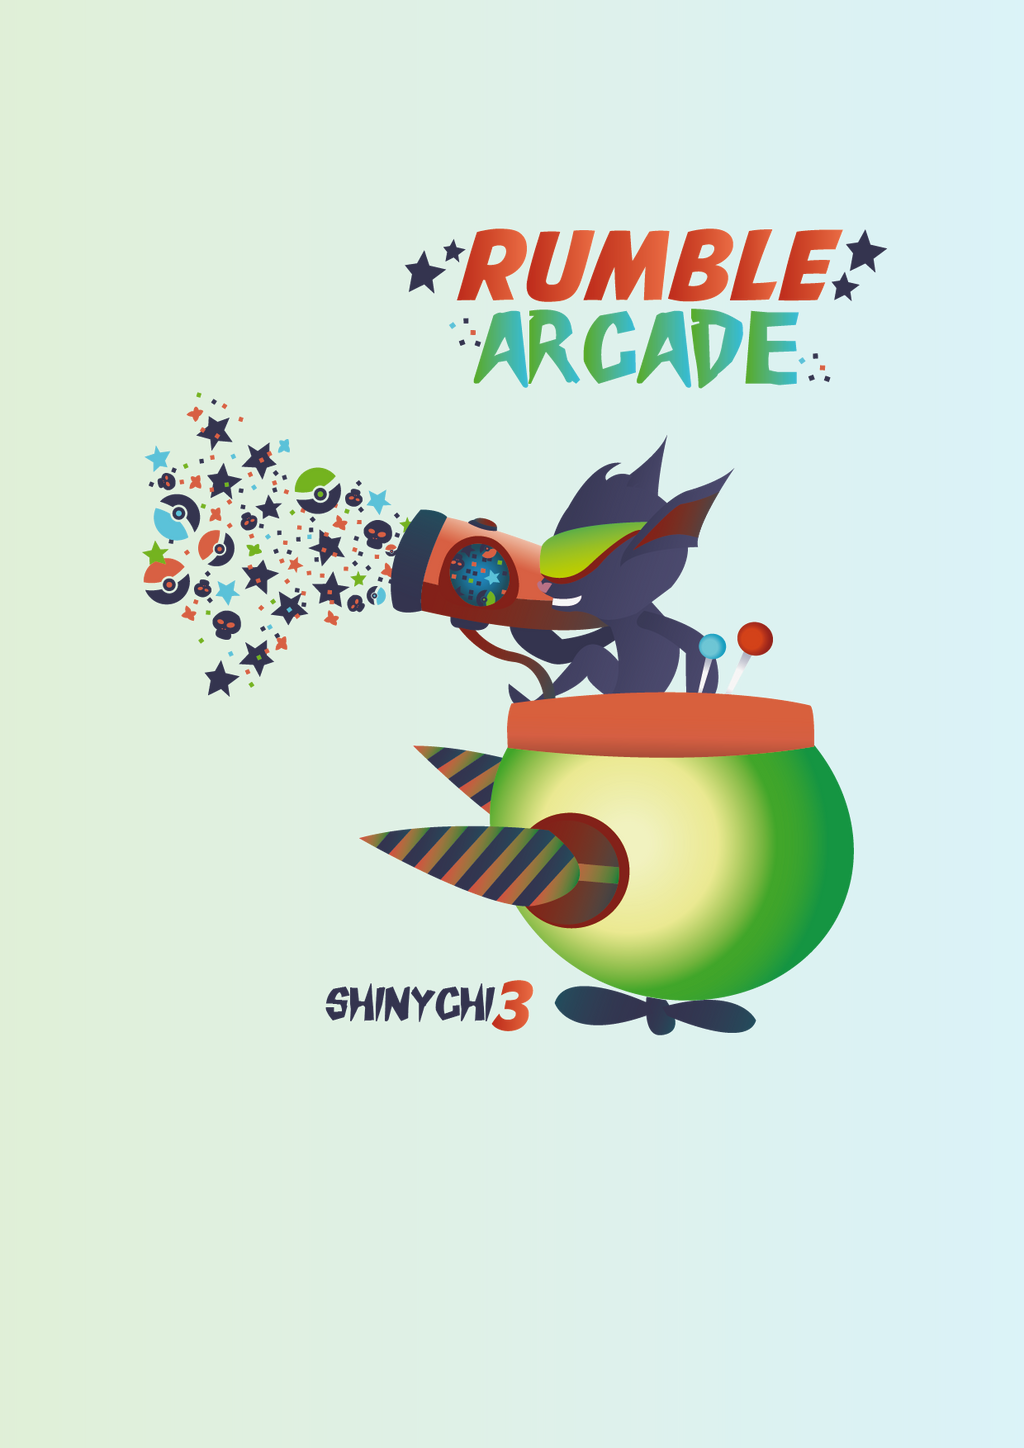 Rumble Arcade by Shiny-chi